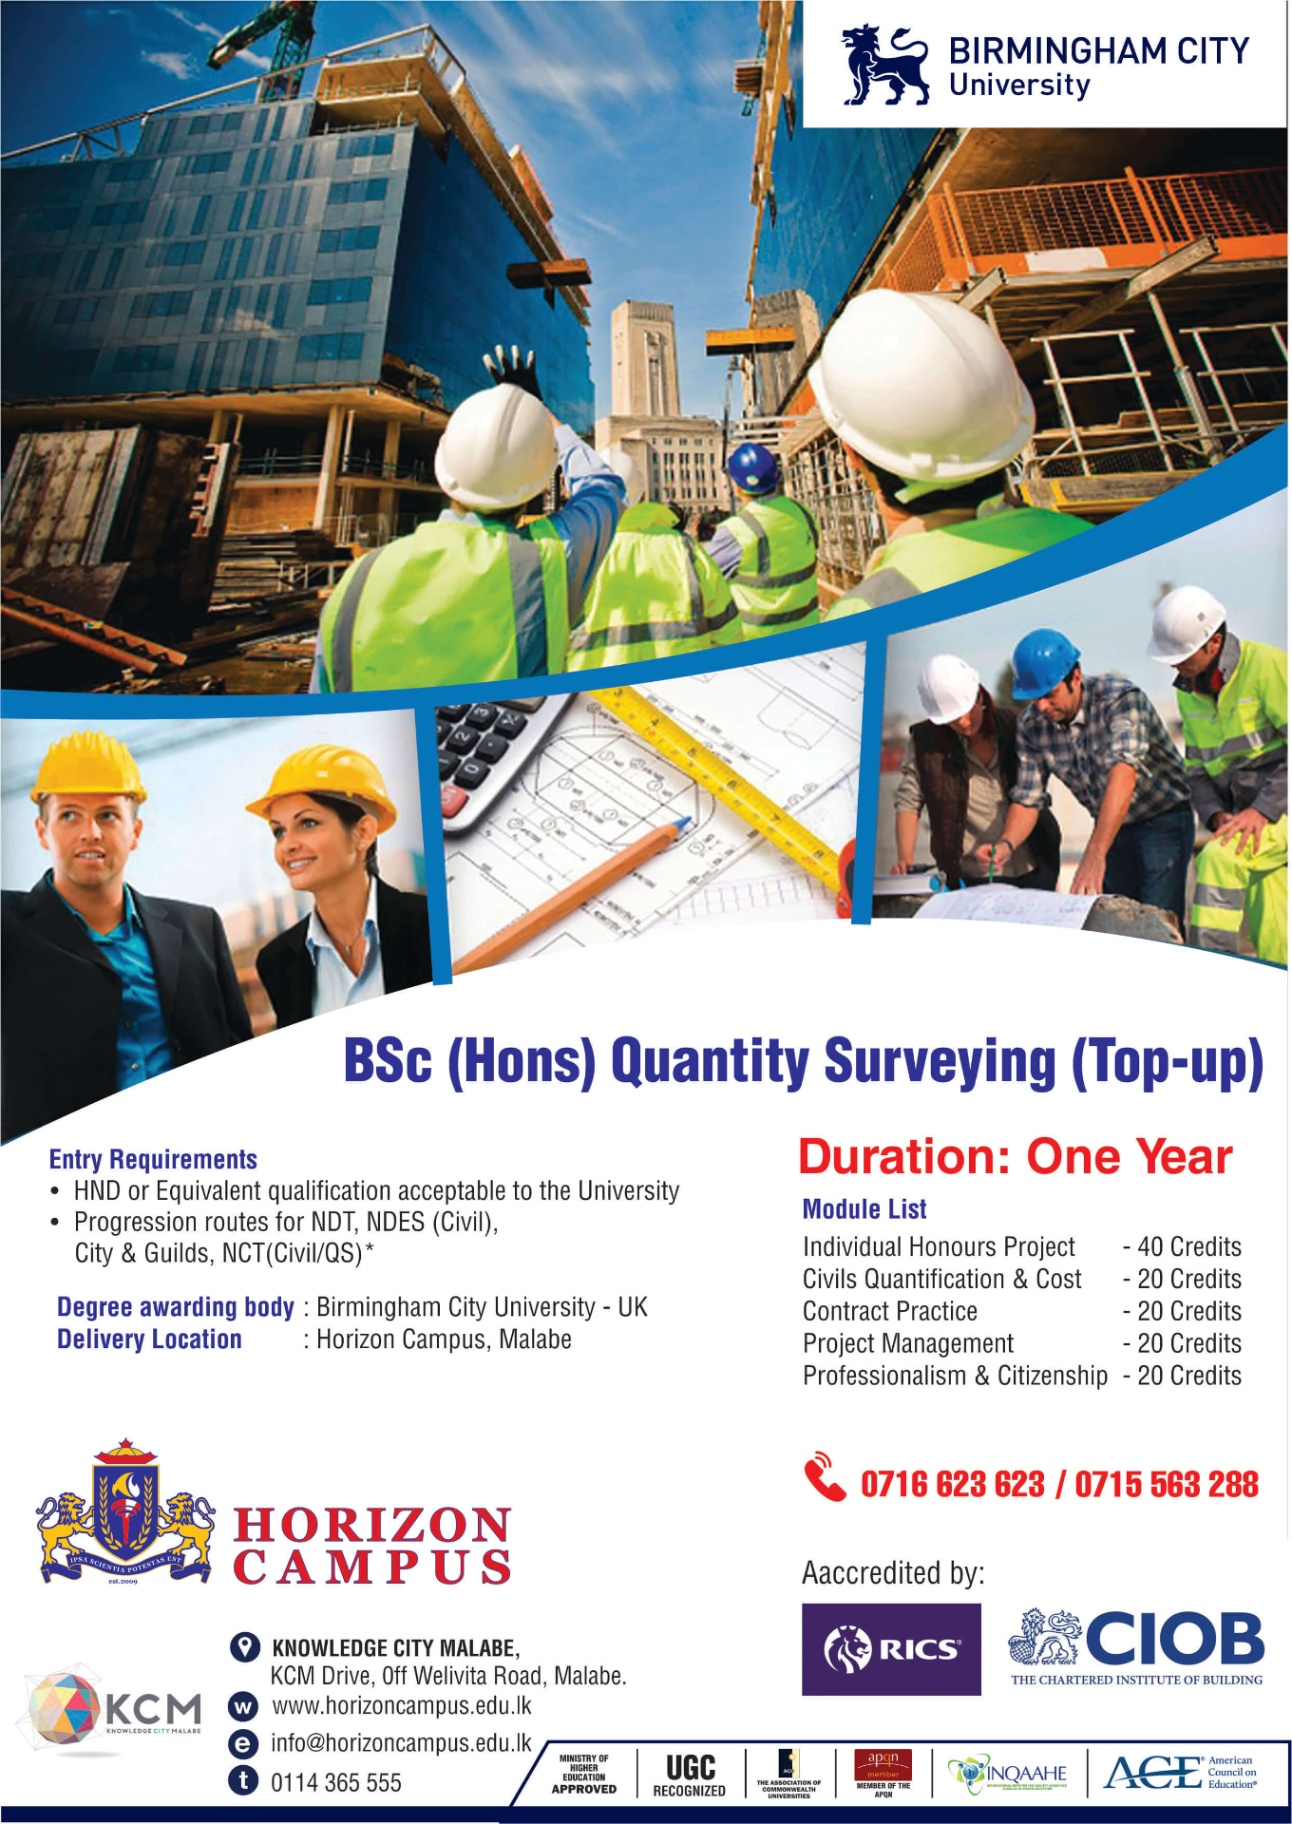 BSc (Hons) Quantity Surveying (Top-Up)